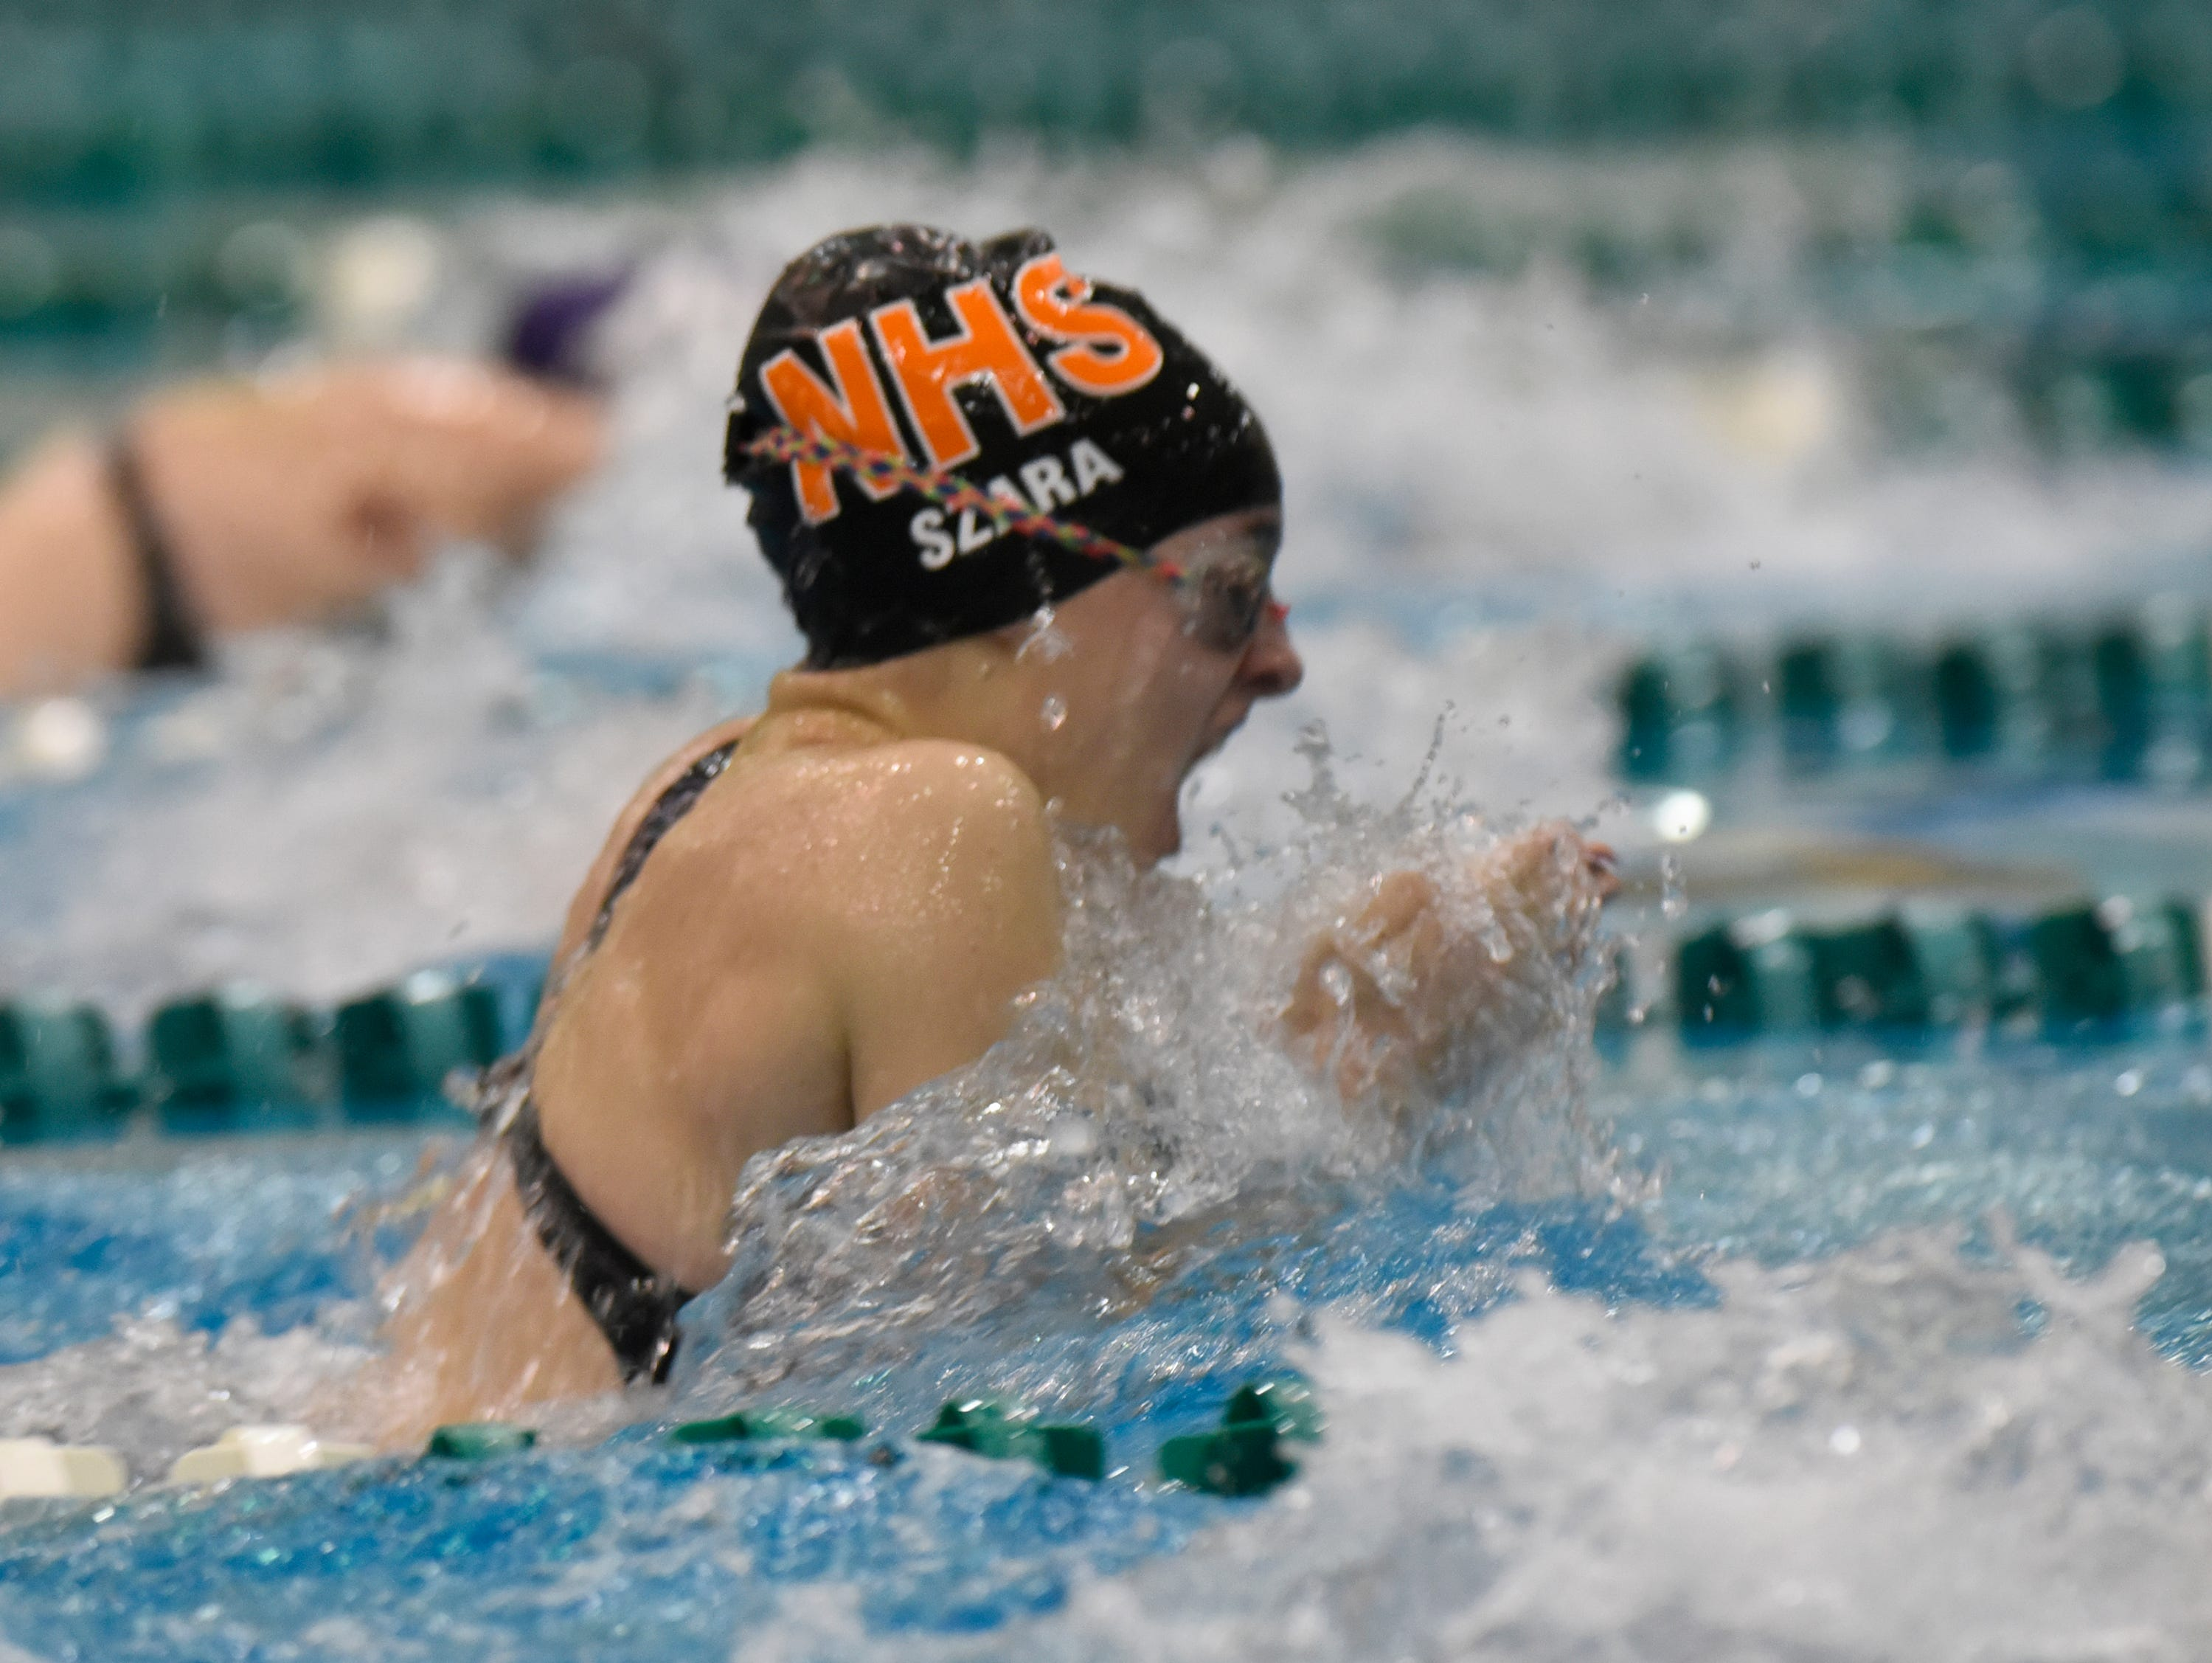 Northville's Riley Szara in the 200 yard medley relay at the Division 1 girls swimming and diving championships held at Eastern Michigan University Nov. 17, 2018.